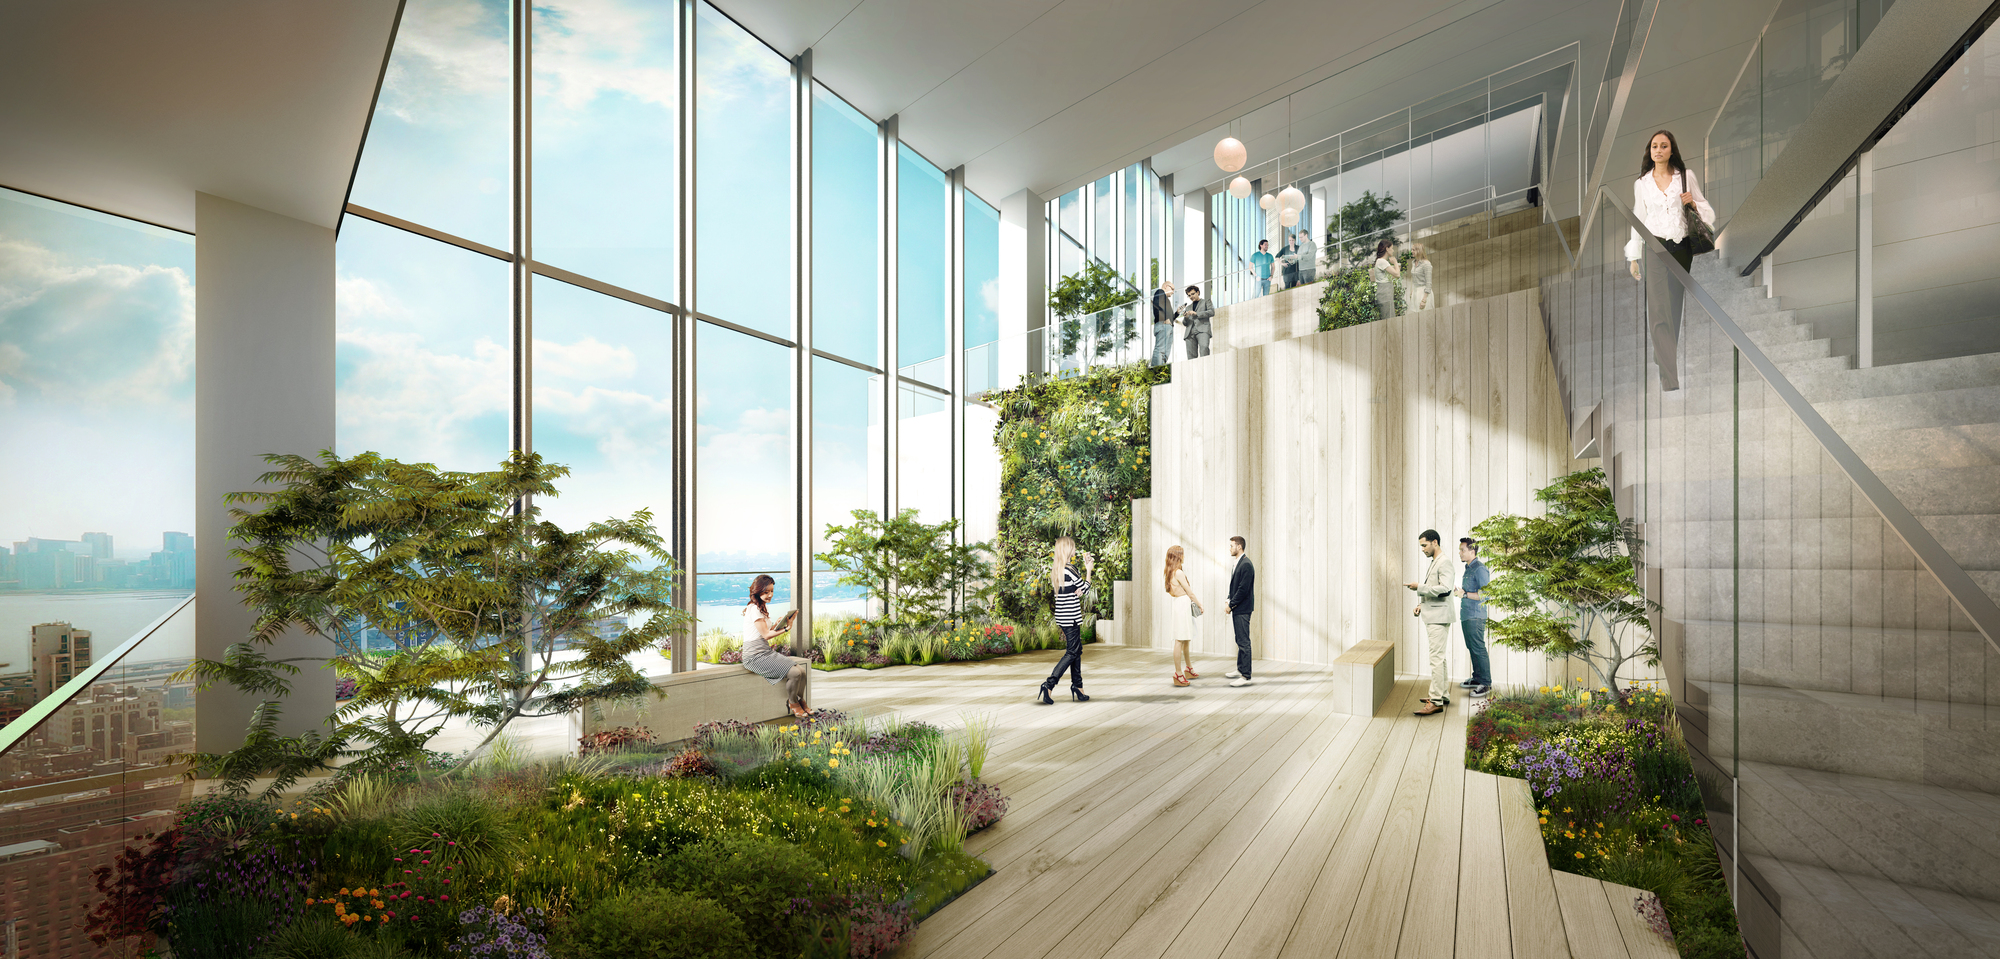 Gallery of BIG to Extend High Line Vertically with Spiral